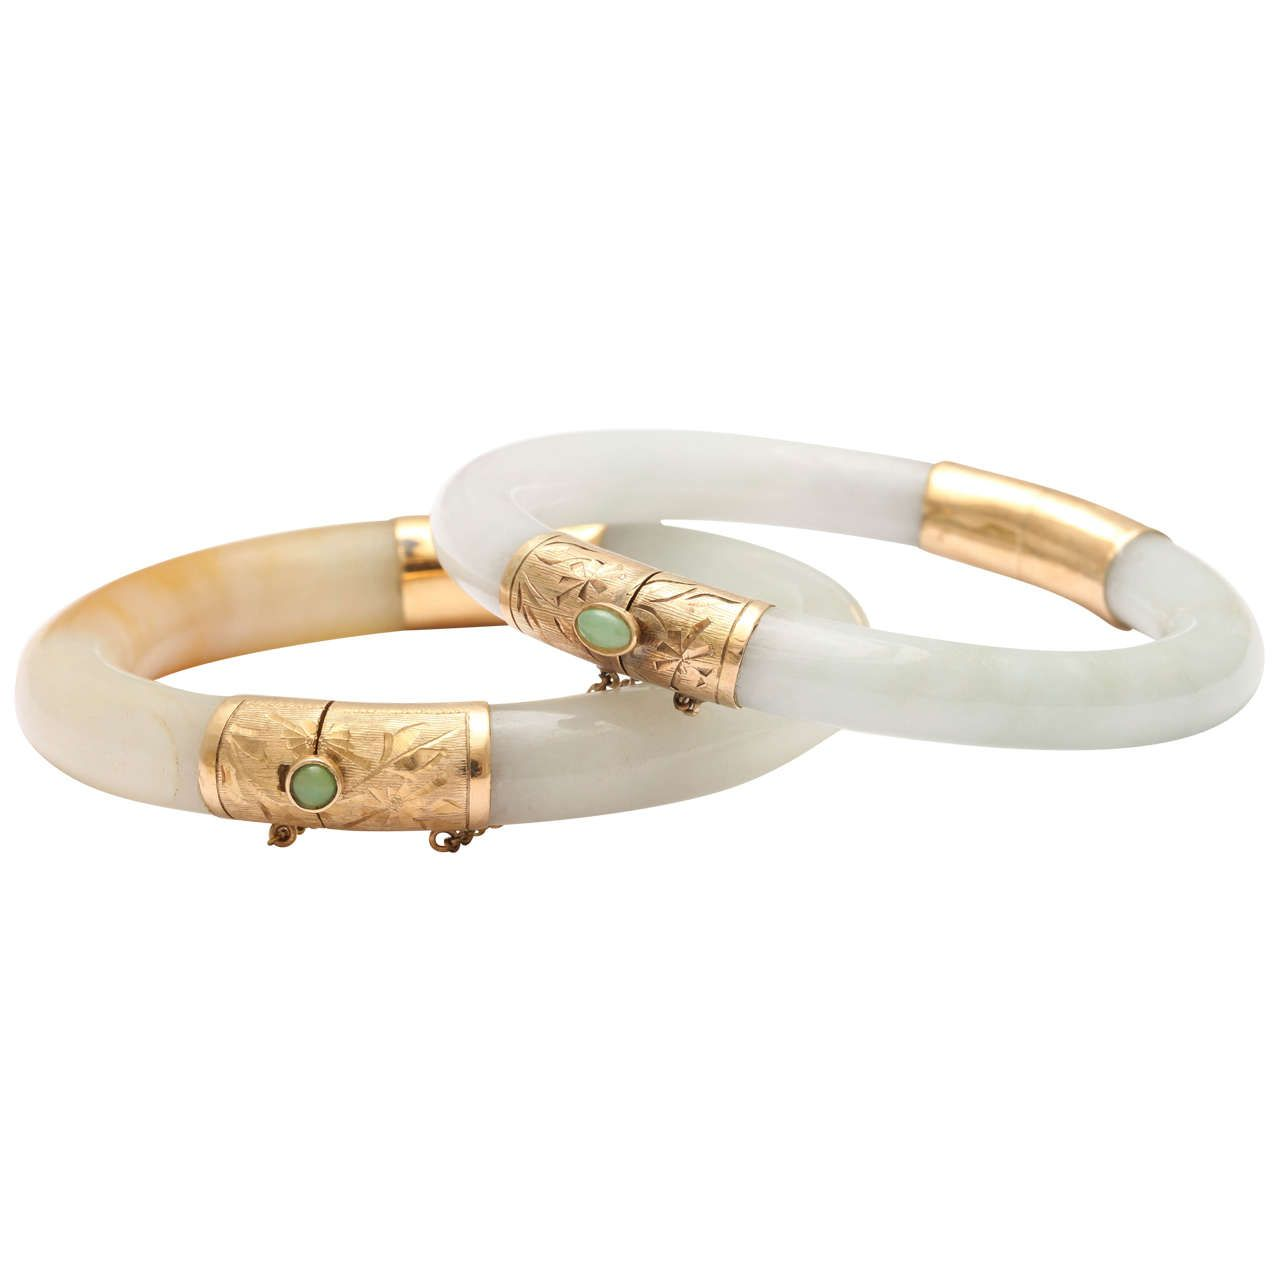 Pair Of Modern Jade Bangles With Engraved Jeweled Clasps